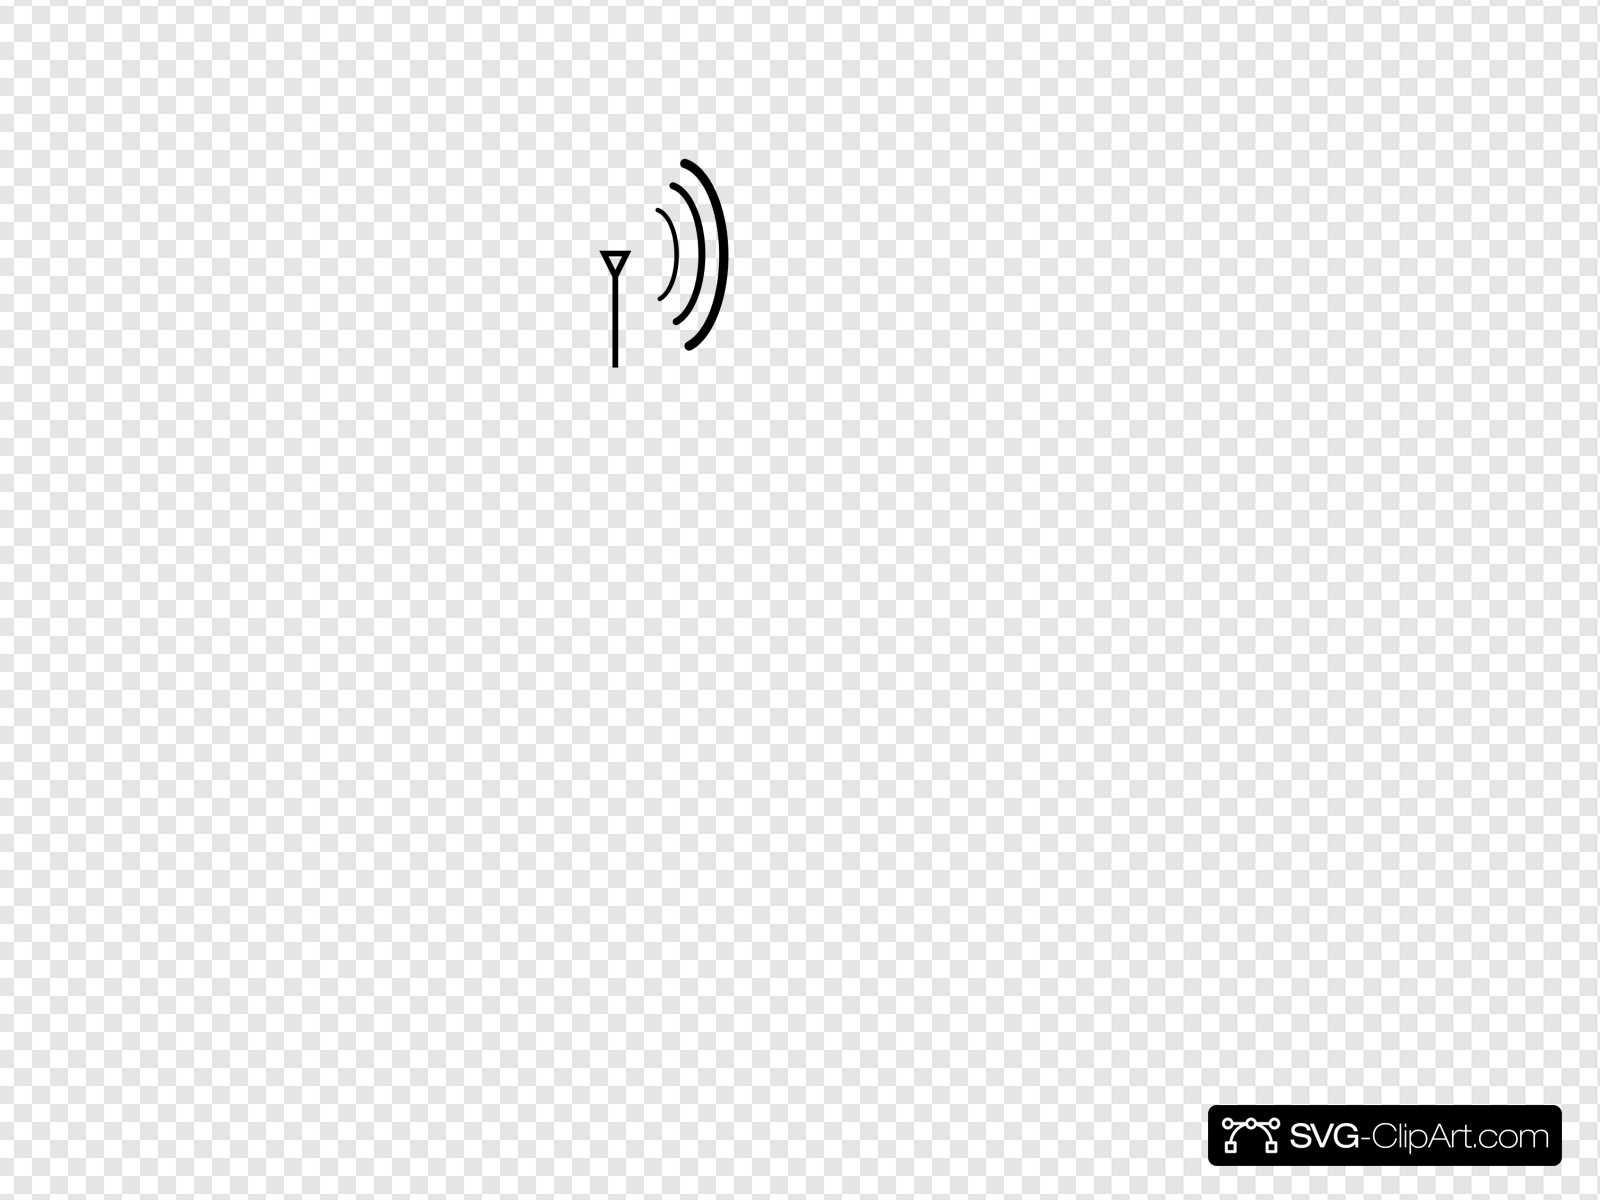 Wireless Directional Antenna Clip art, Icon and SVG.